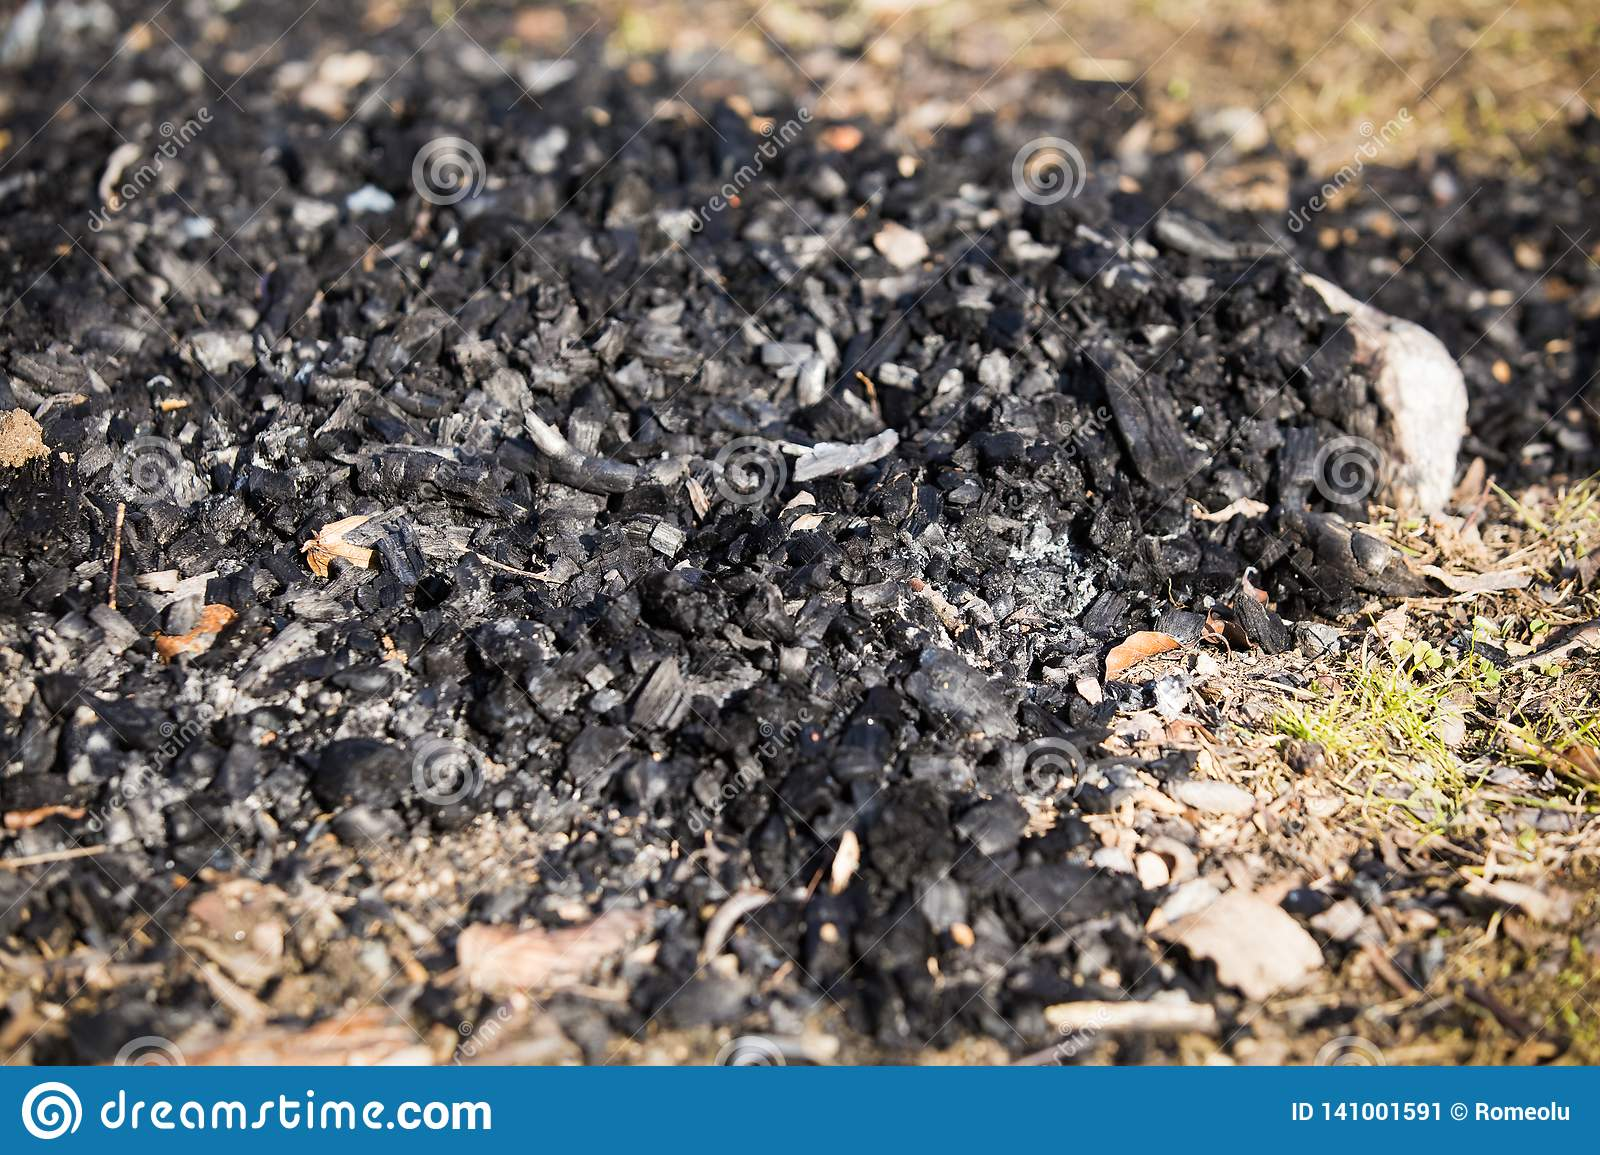 Natural wood charcoal biomass for energy